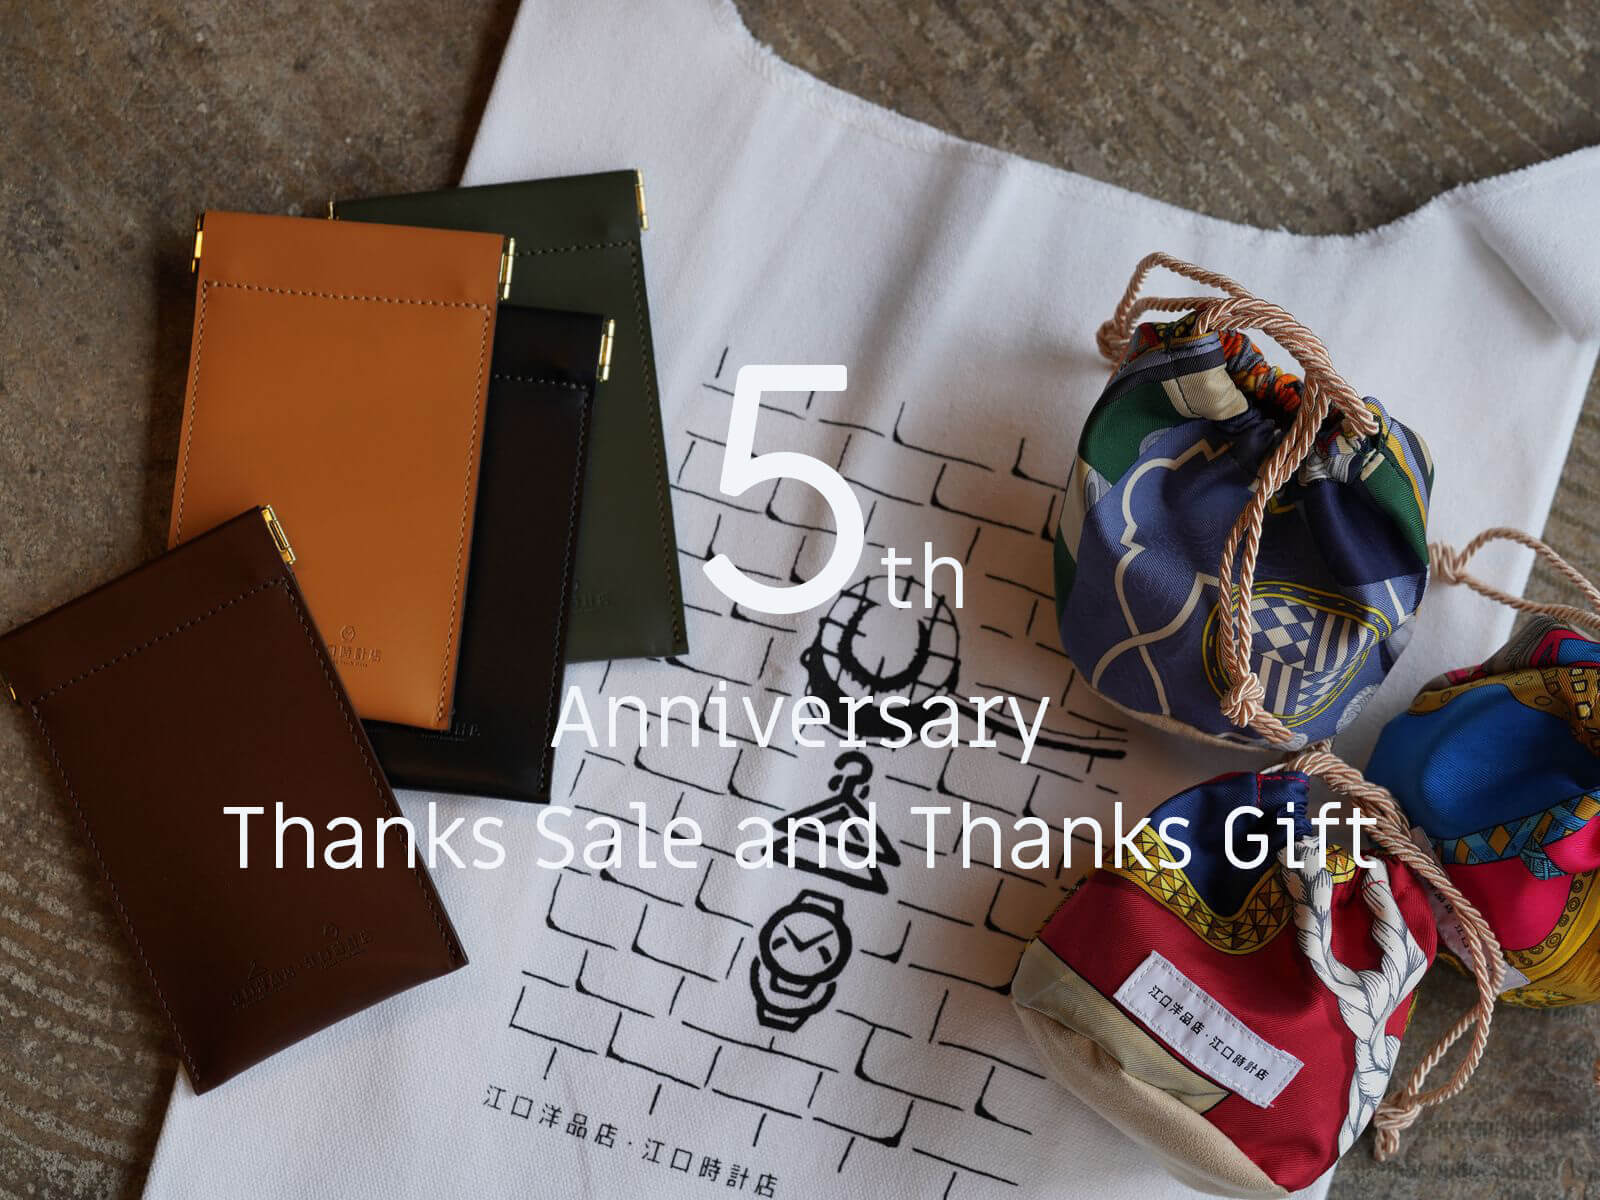 Thanks Sale and Thanks Gift / 5th Anniversary Fair